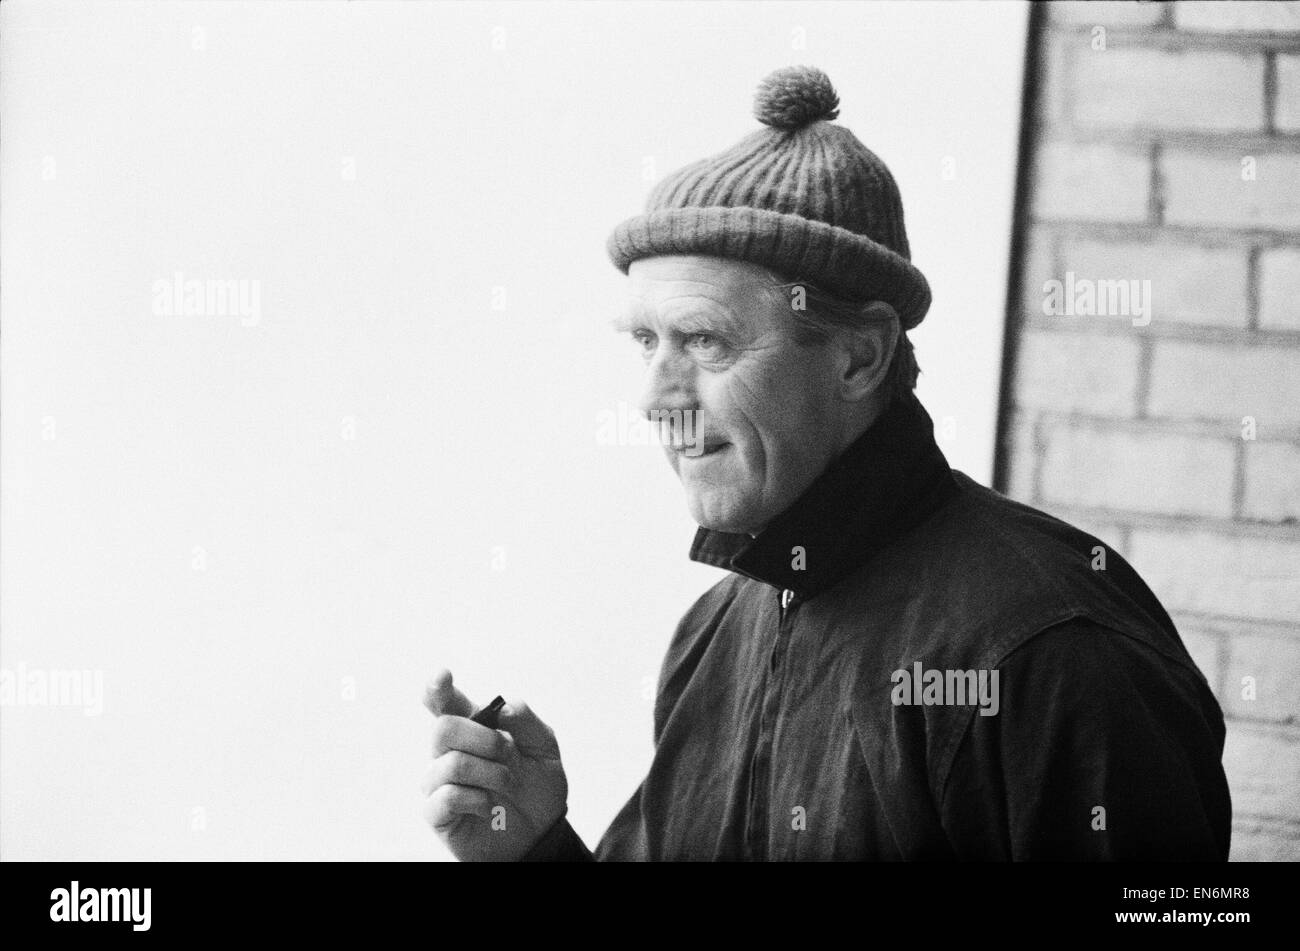 Fulham manager and coach Vic Buckingham putting his team through a training session. 7th December 1967. - Stock Image